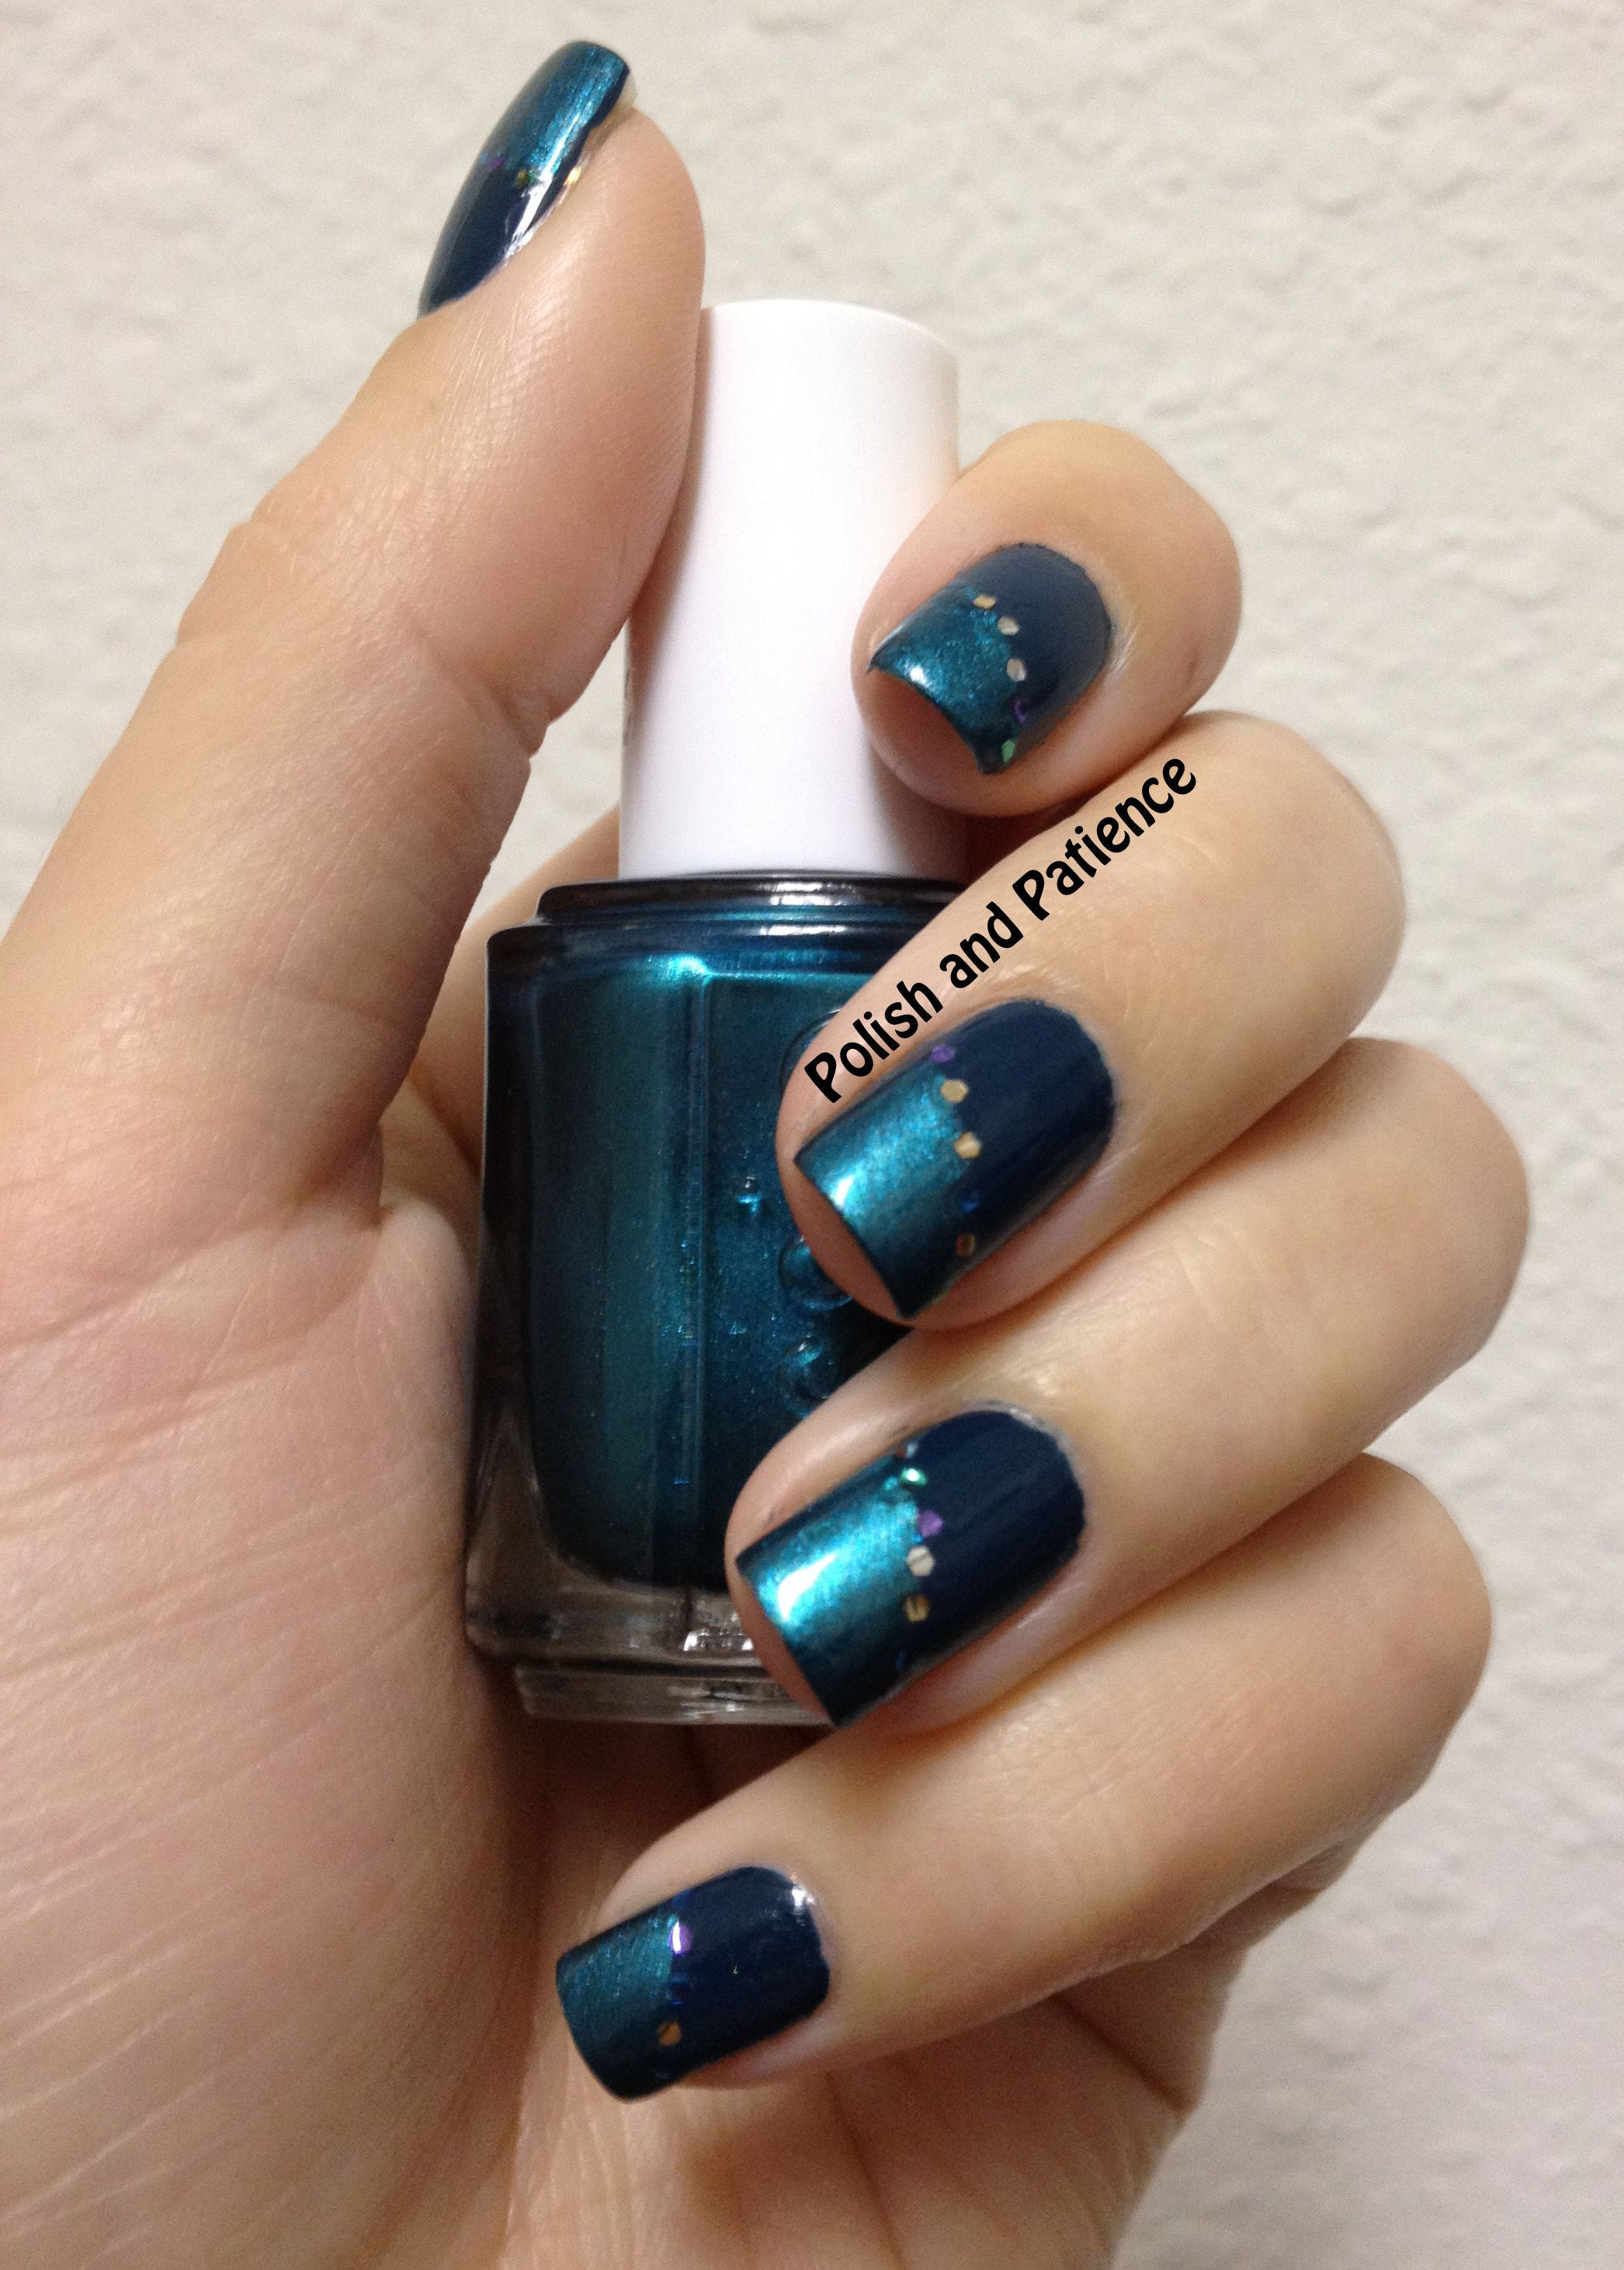 Peacock inspired nails presented by Polish and Patience - www.PolishAndPatience.com